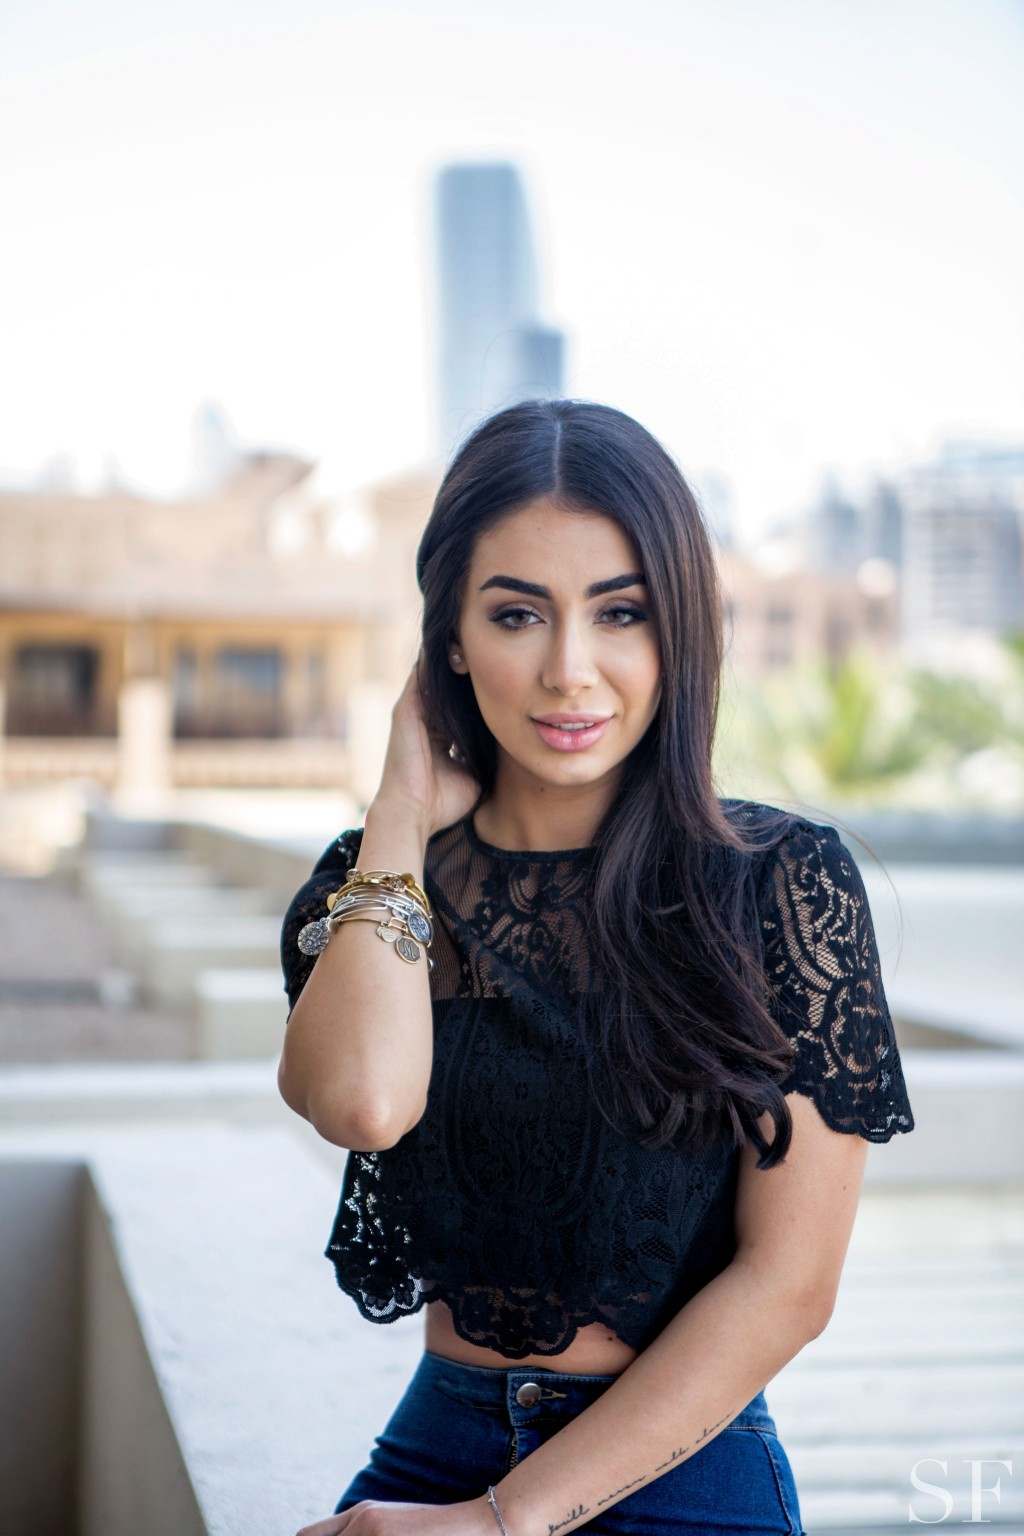 Lebanese Makeup Artist Maya Ahmad Reveals Her Beauty Routine